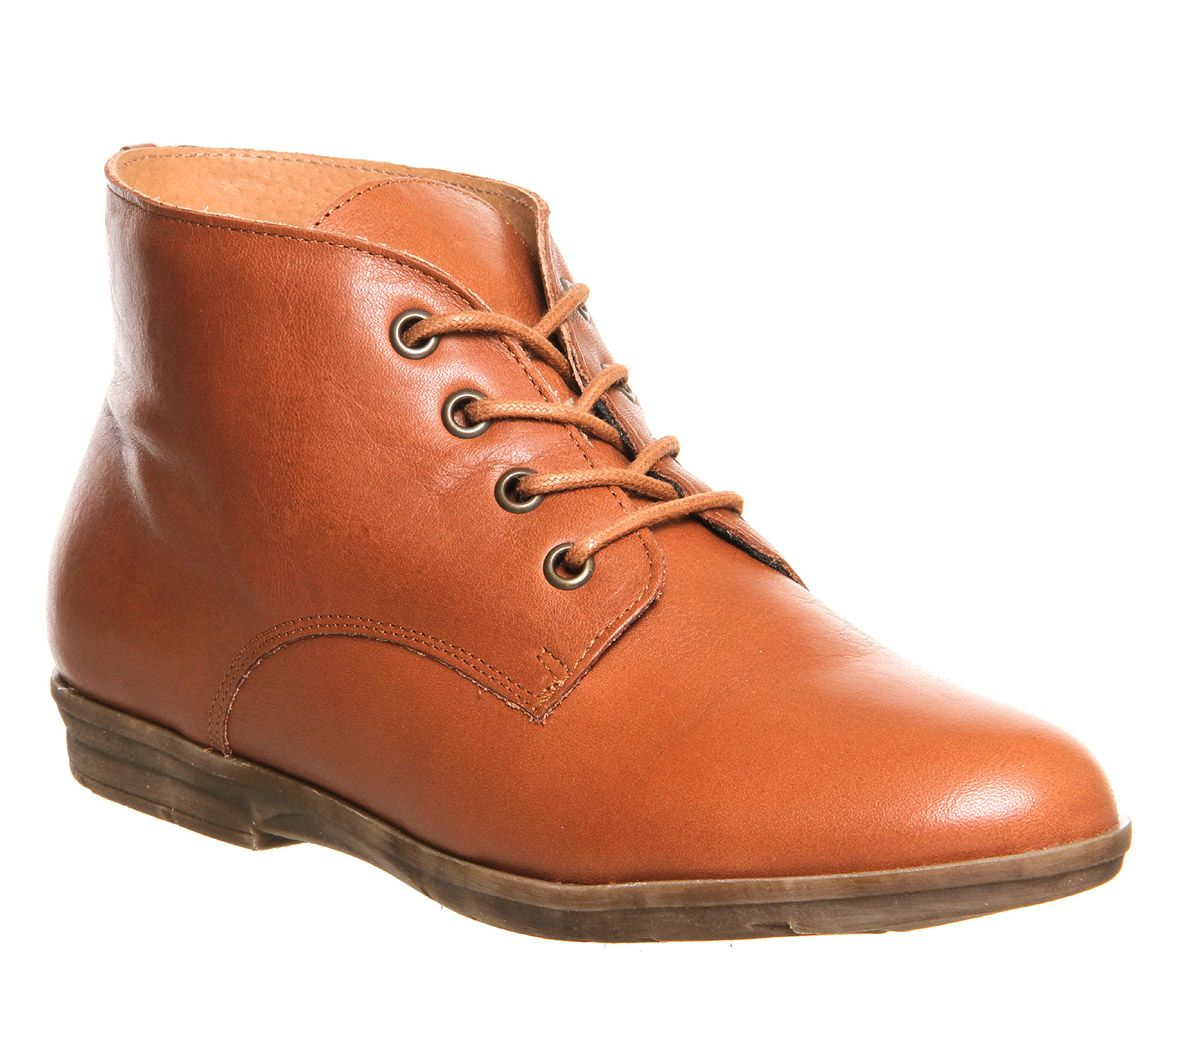 Office Fable Lace Up Tan Leather Ankle Boots